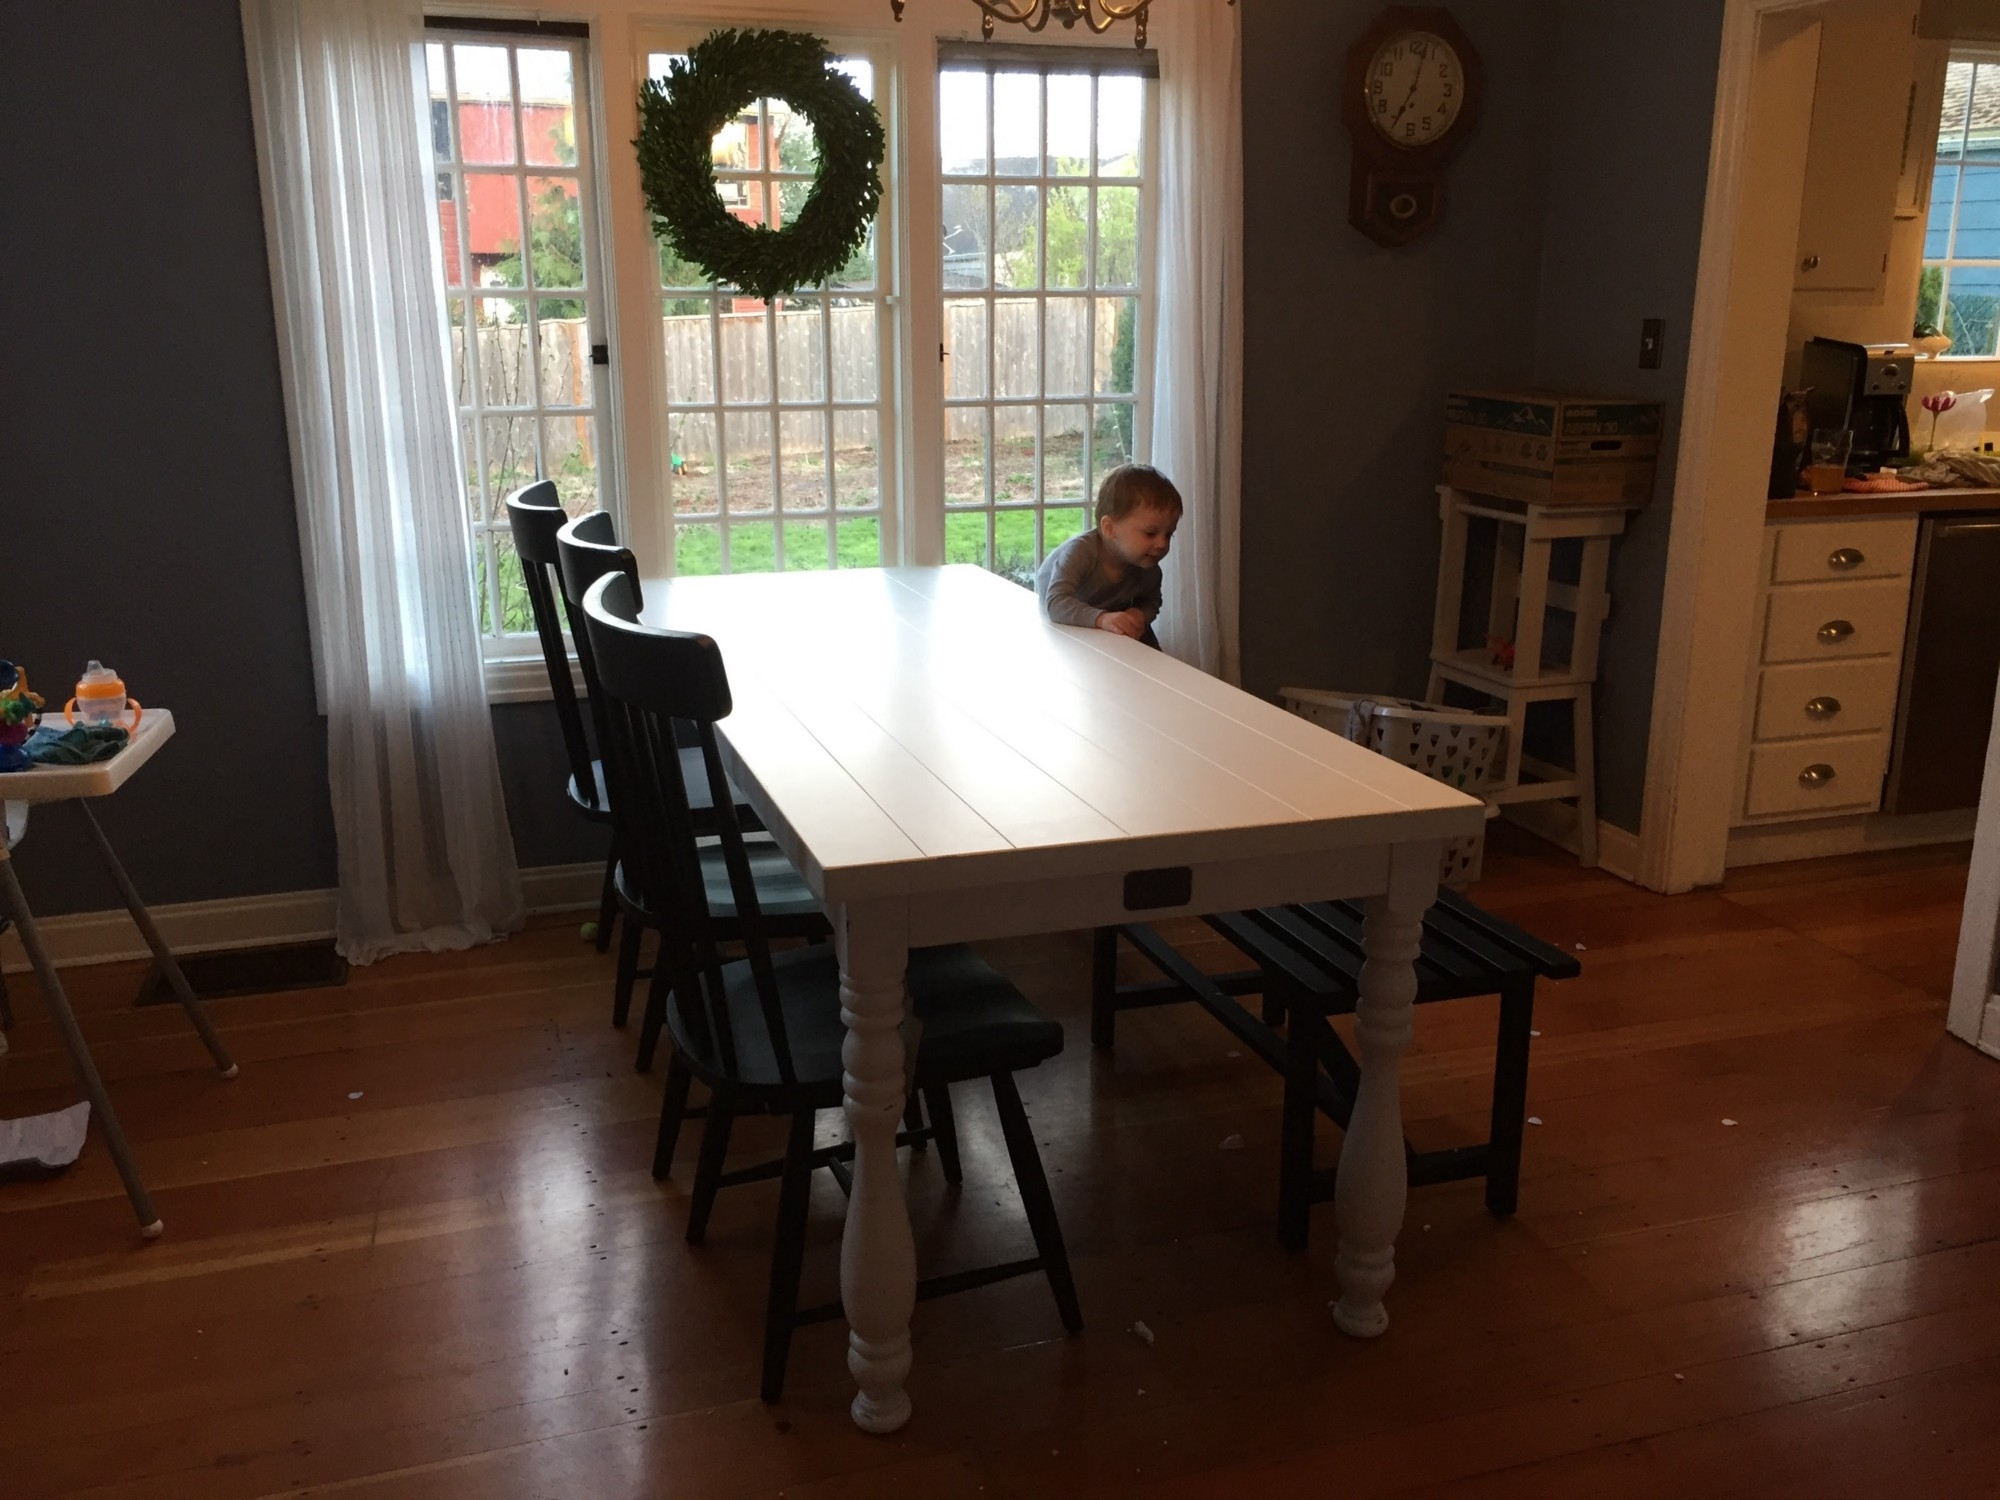 Joanna Gaines' Magnolia Home Furniture Line — A Review With Newest Magnolia Home Shop Floor Dining Tables With Iron Trestle (Photo 10 of 20)